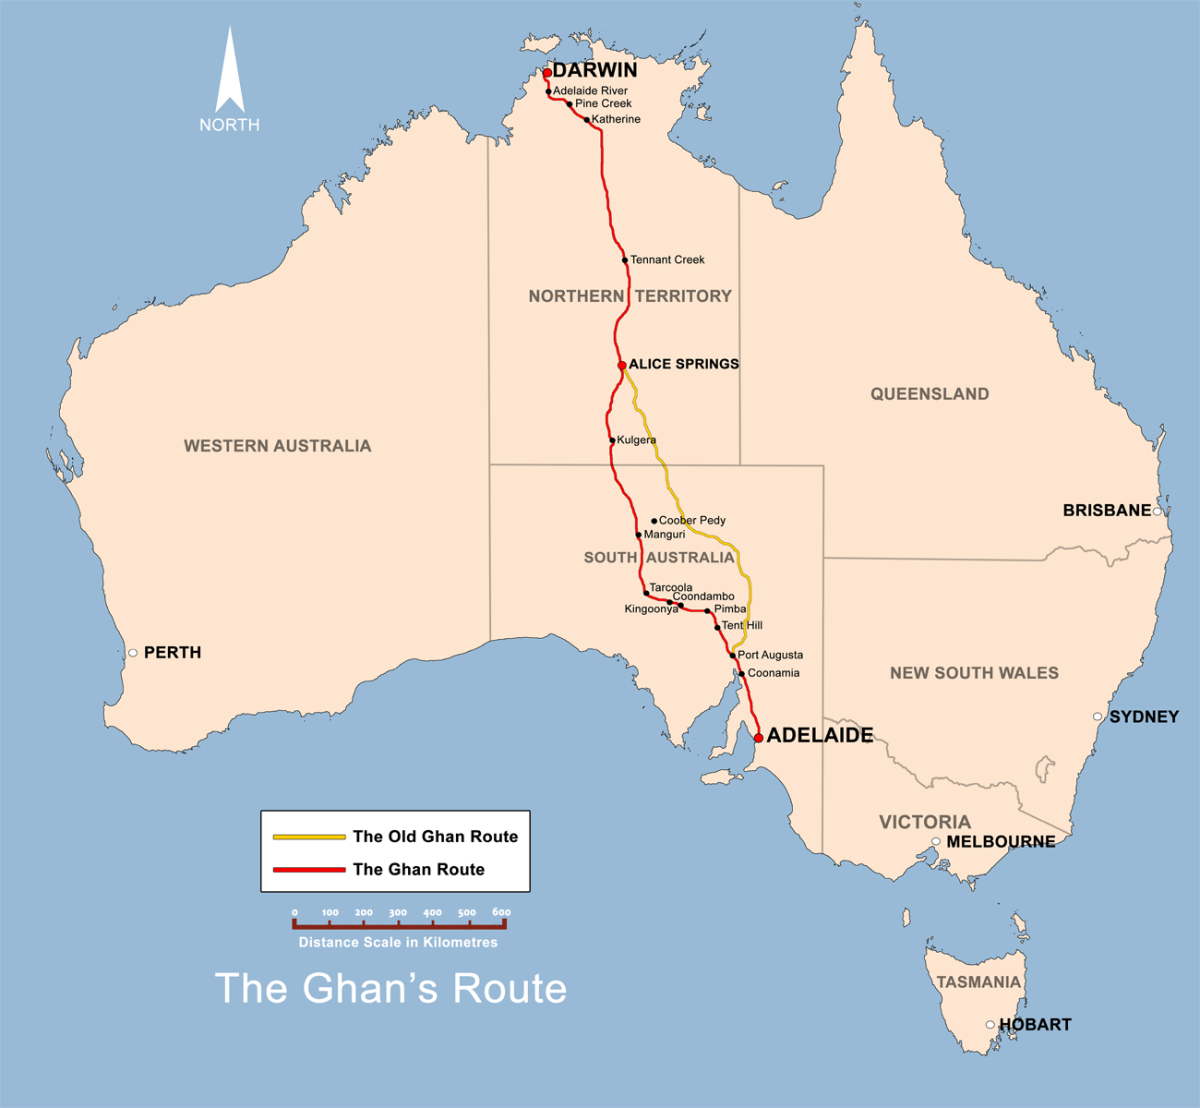 Route of The Ghan